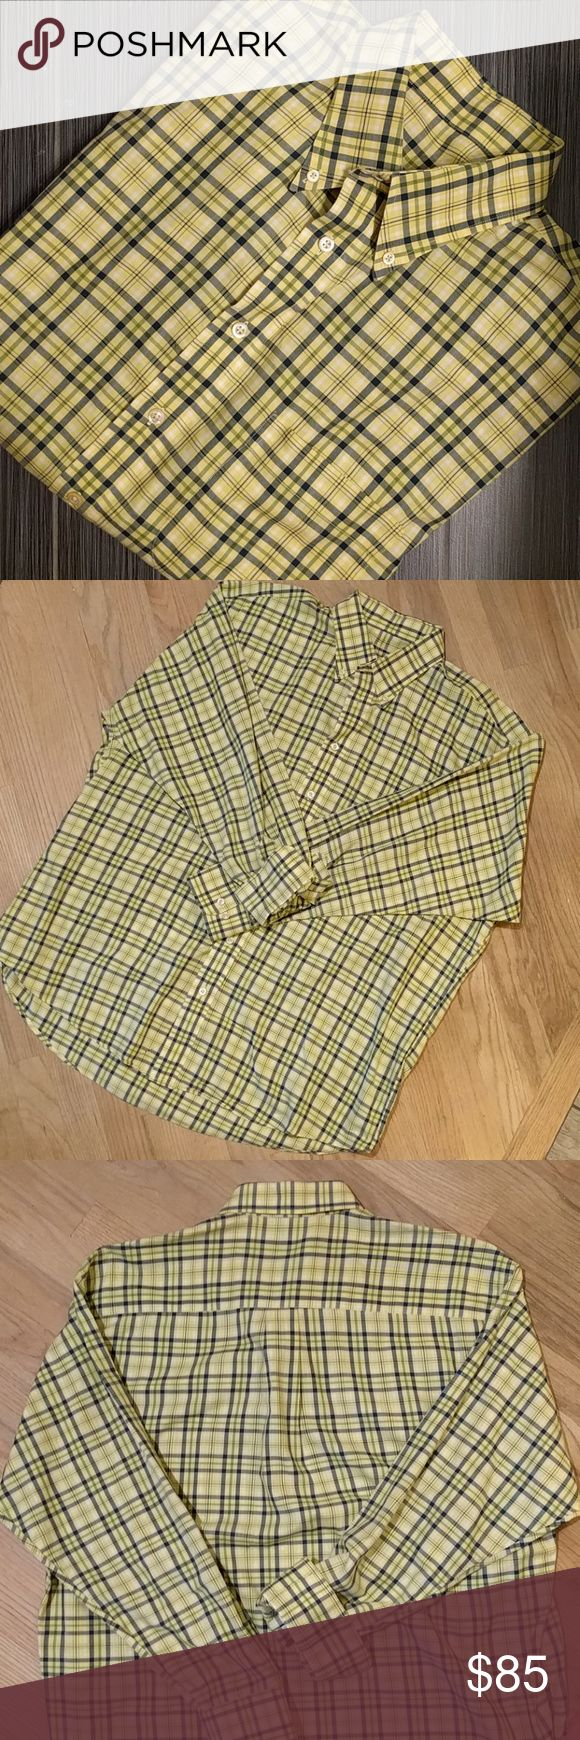 Burberry London// Preppy Yellow Plaid Button-down High quality, 100% cotton button-down shirt by London Burberry (made in USA). Button-down collar and one breast  pocket. Plaid pattern is yellow, navy, and white.   Perfect for work casual or date night casual! Classy, classic, and preppy fashion! (Last pic is a Burberry stock photo for style inspo!)  Size XL. See 2nd pic for measurements, created with Sizely. Burberry Shirts Casual Button Down Shirts